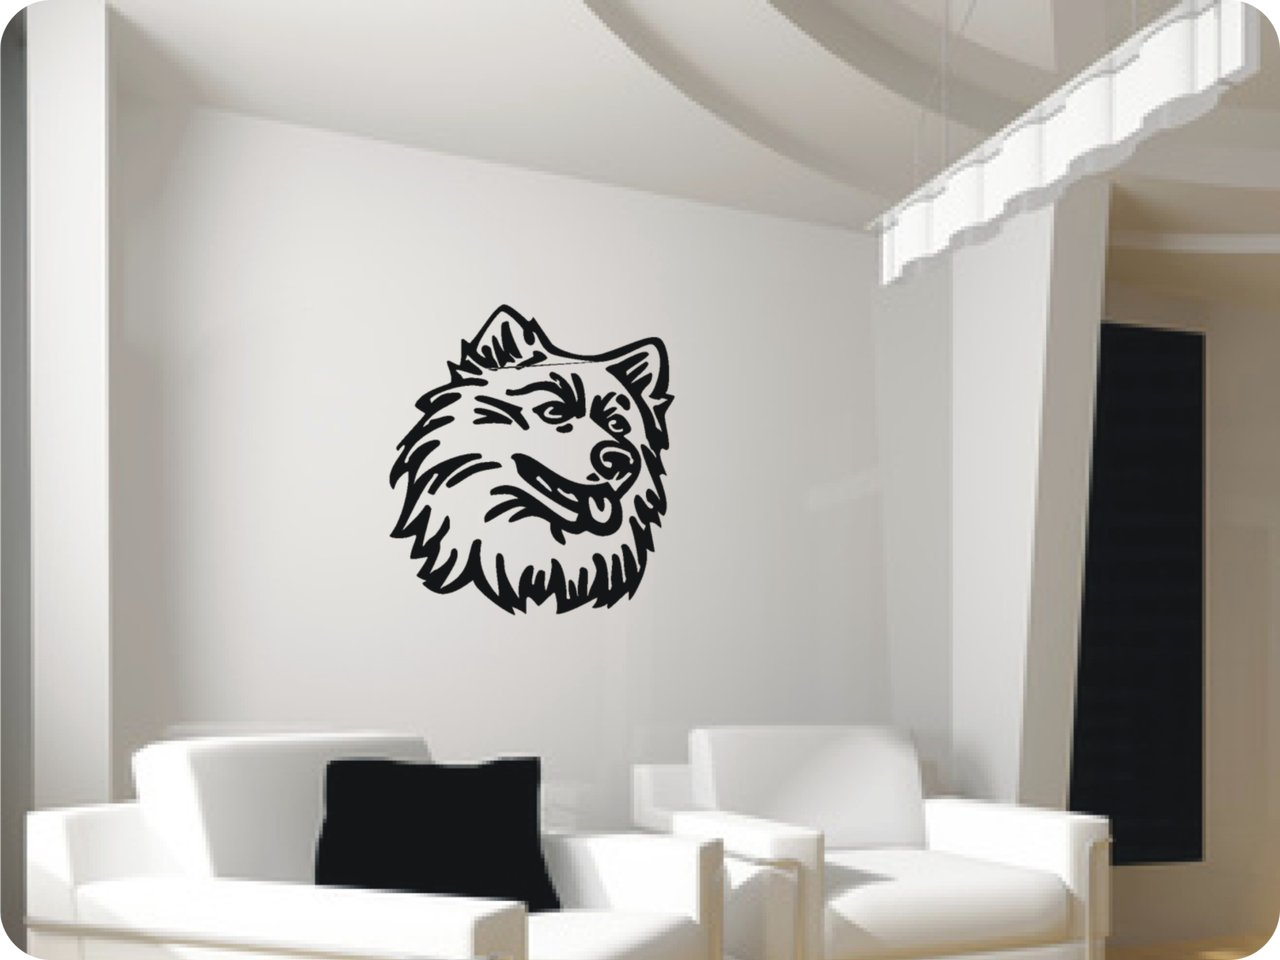 Lovely Wandtattoo Bilder Gallery Of Husky 412 Wandsticker